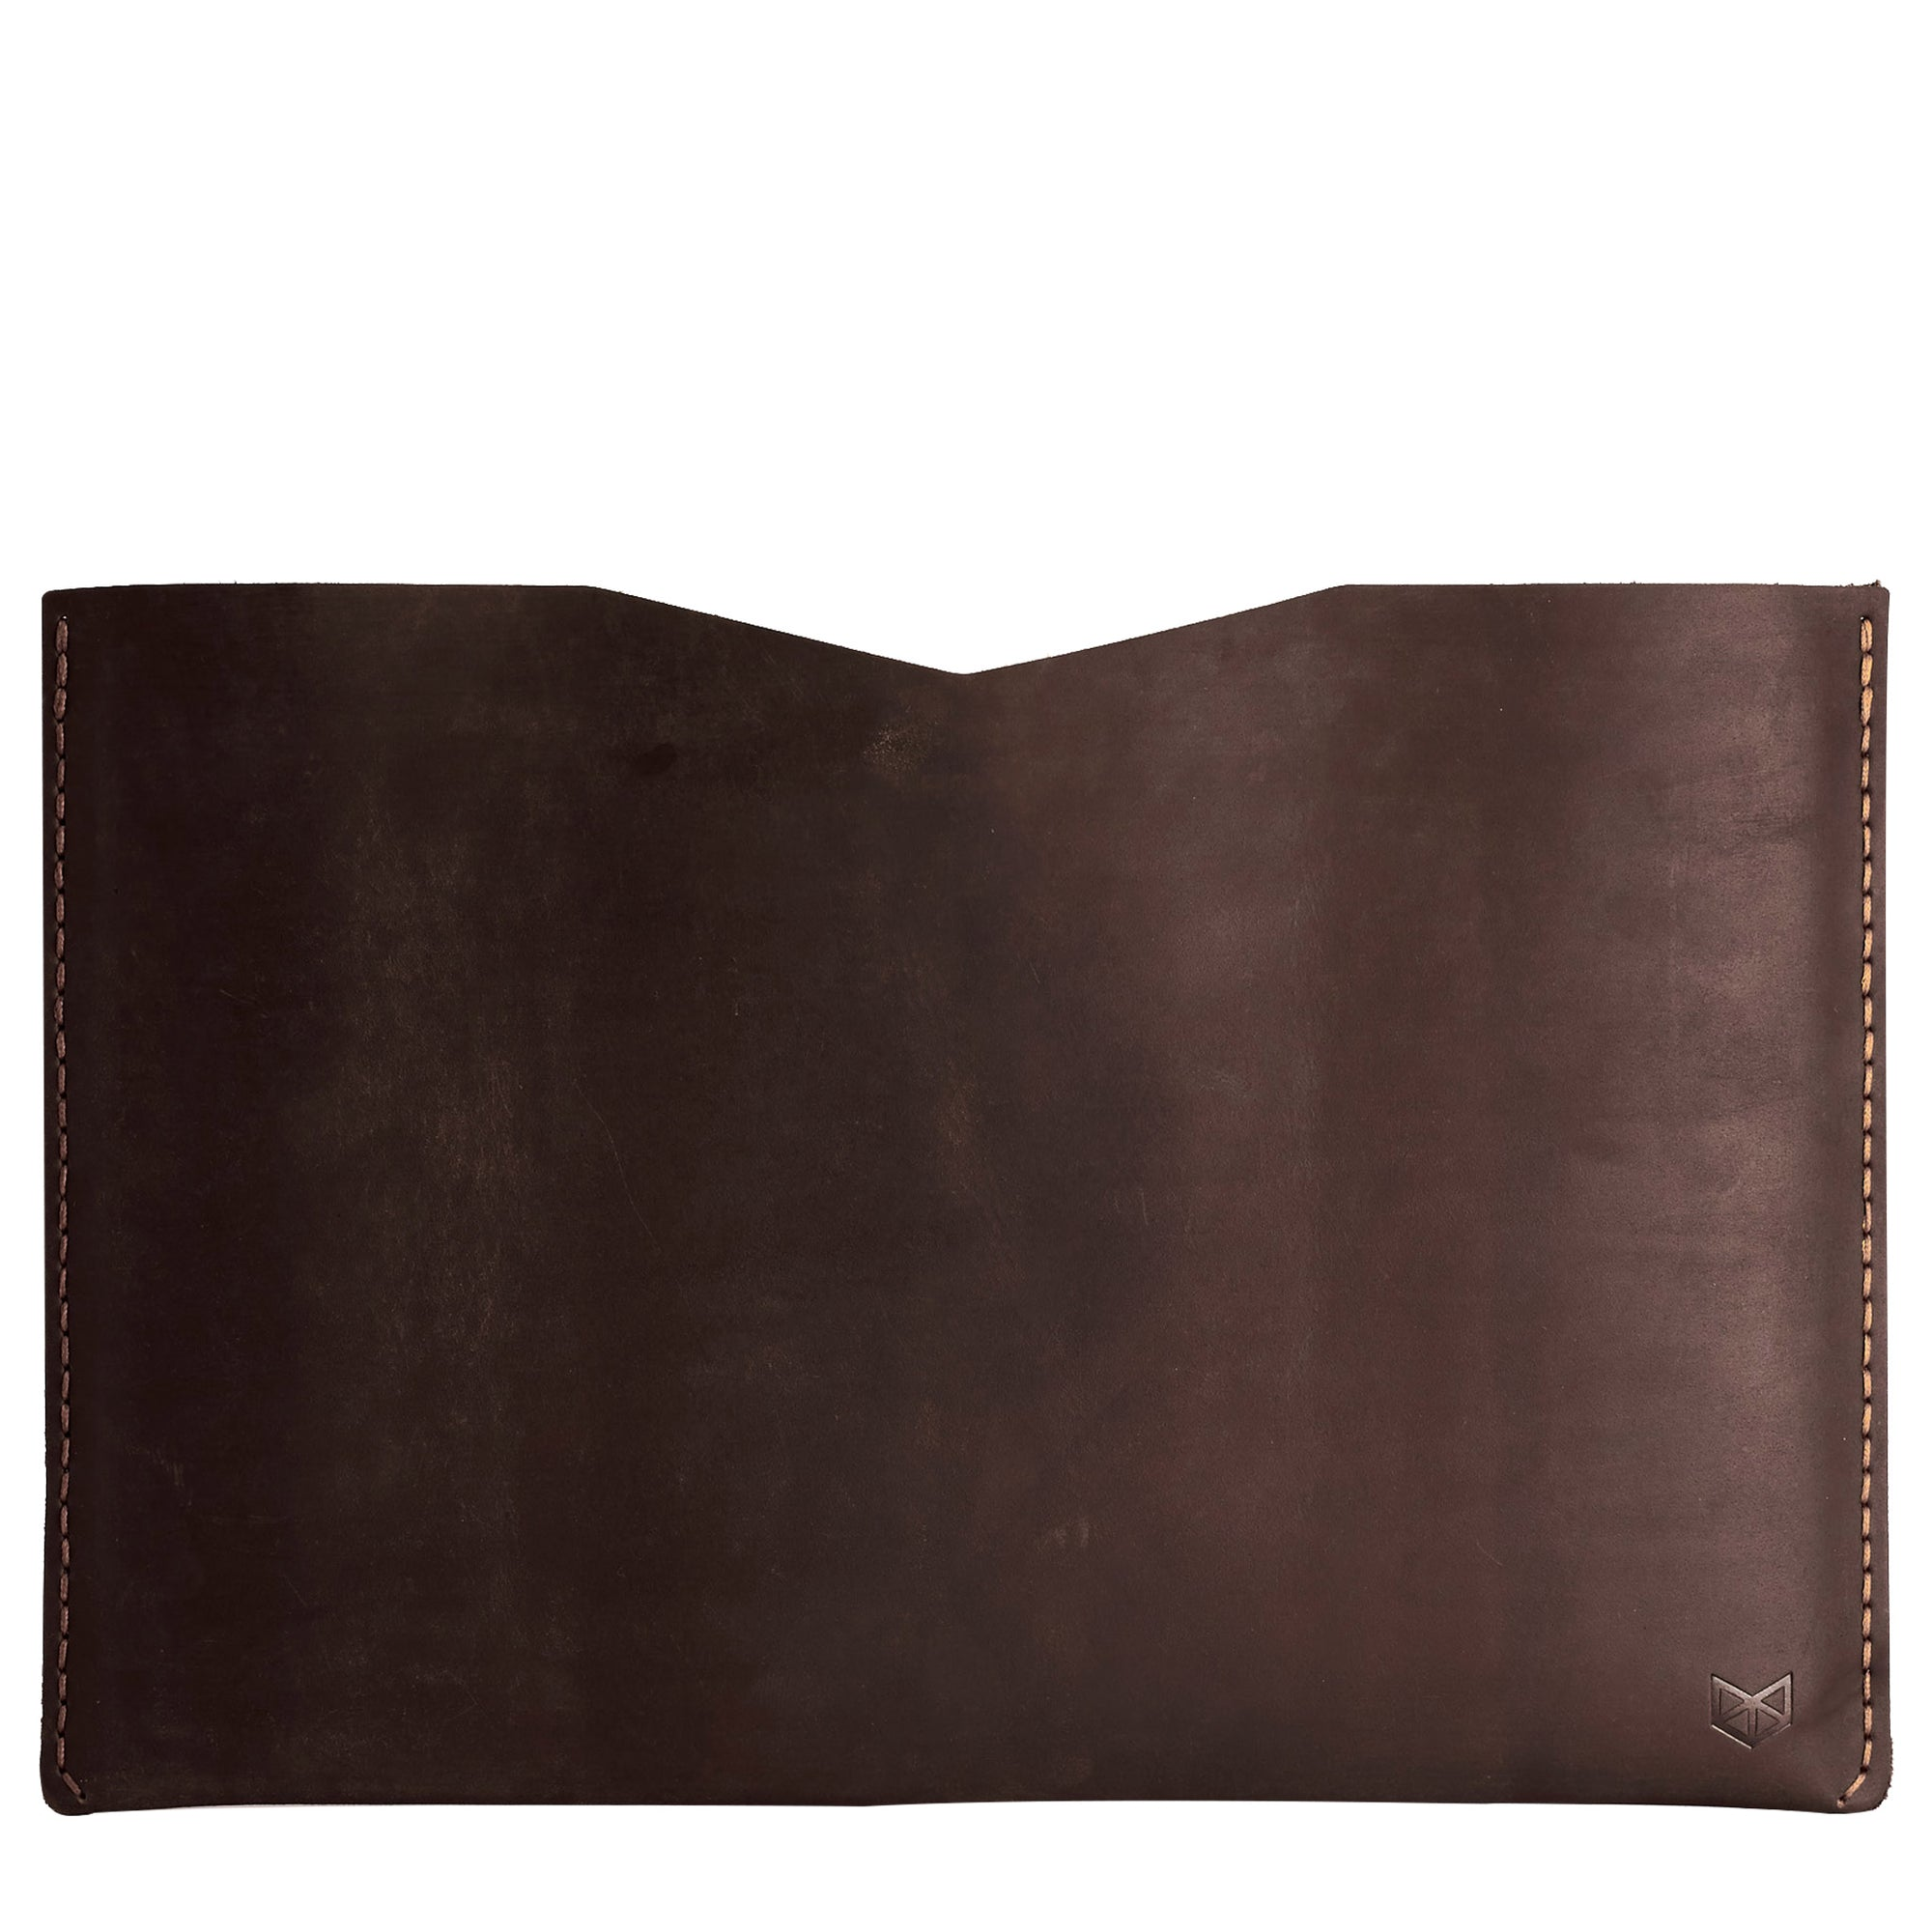 BASIC // MARRON: Leather Microsoft Surface by Capra Leather